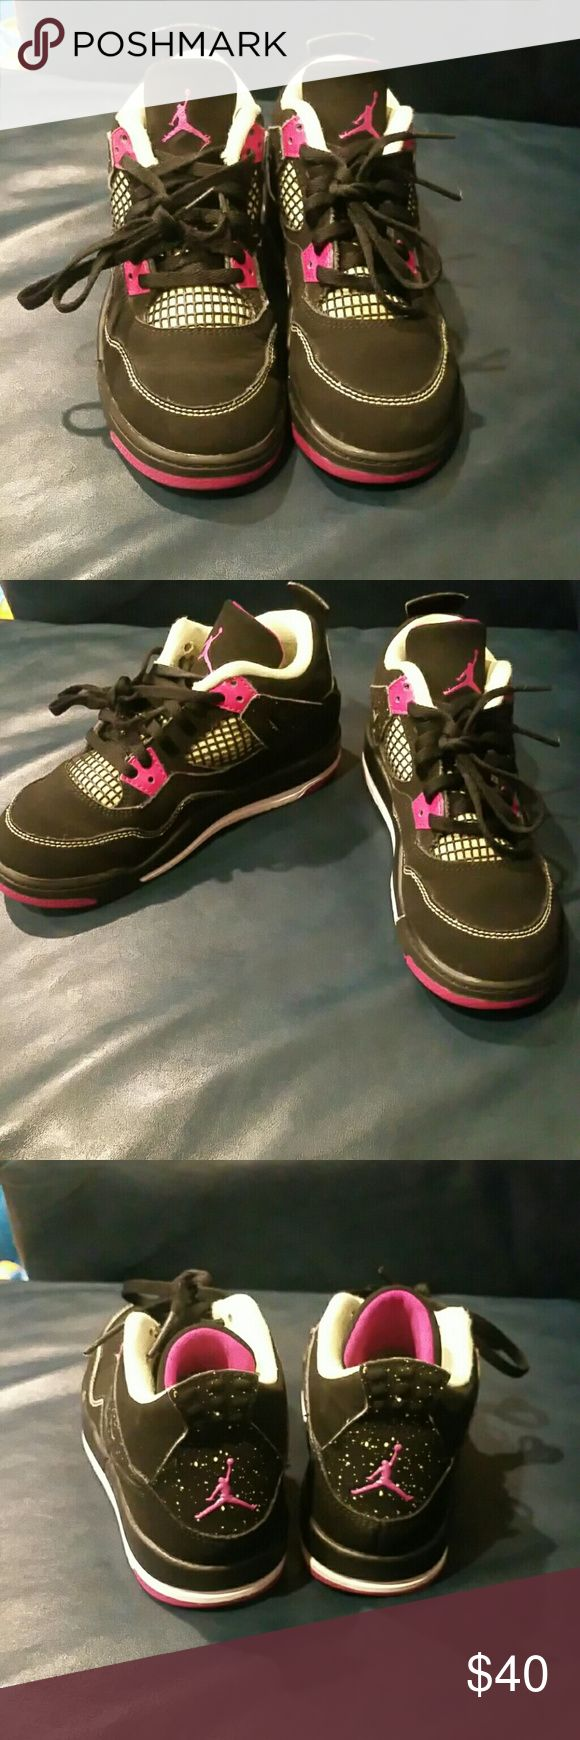 Jordan retro 4's Jordan Retro 4's black with pink and yellow. Very cute and great condition. Size 13c Jordan Shoes